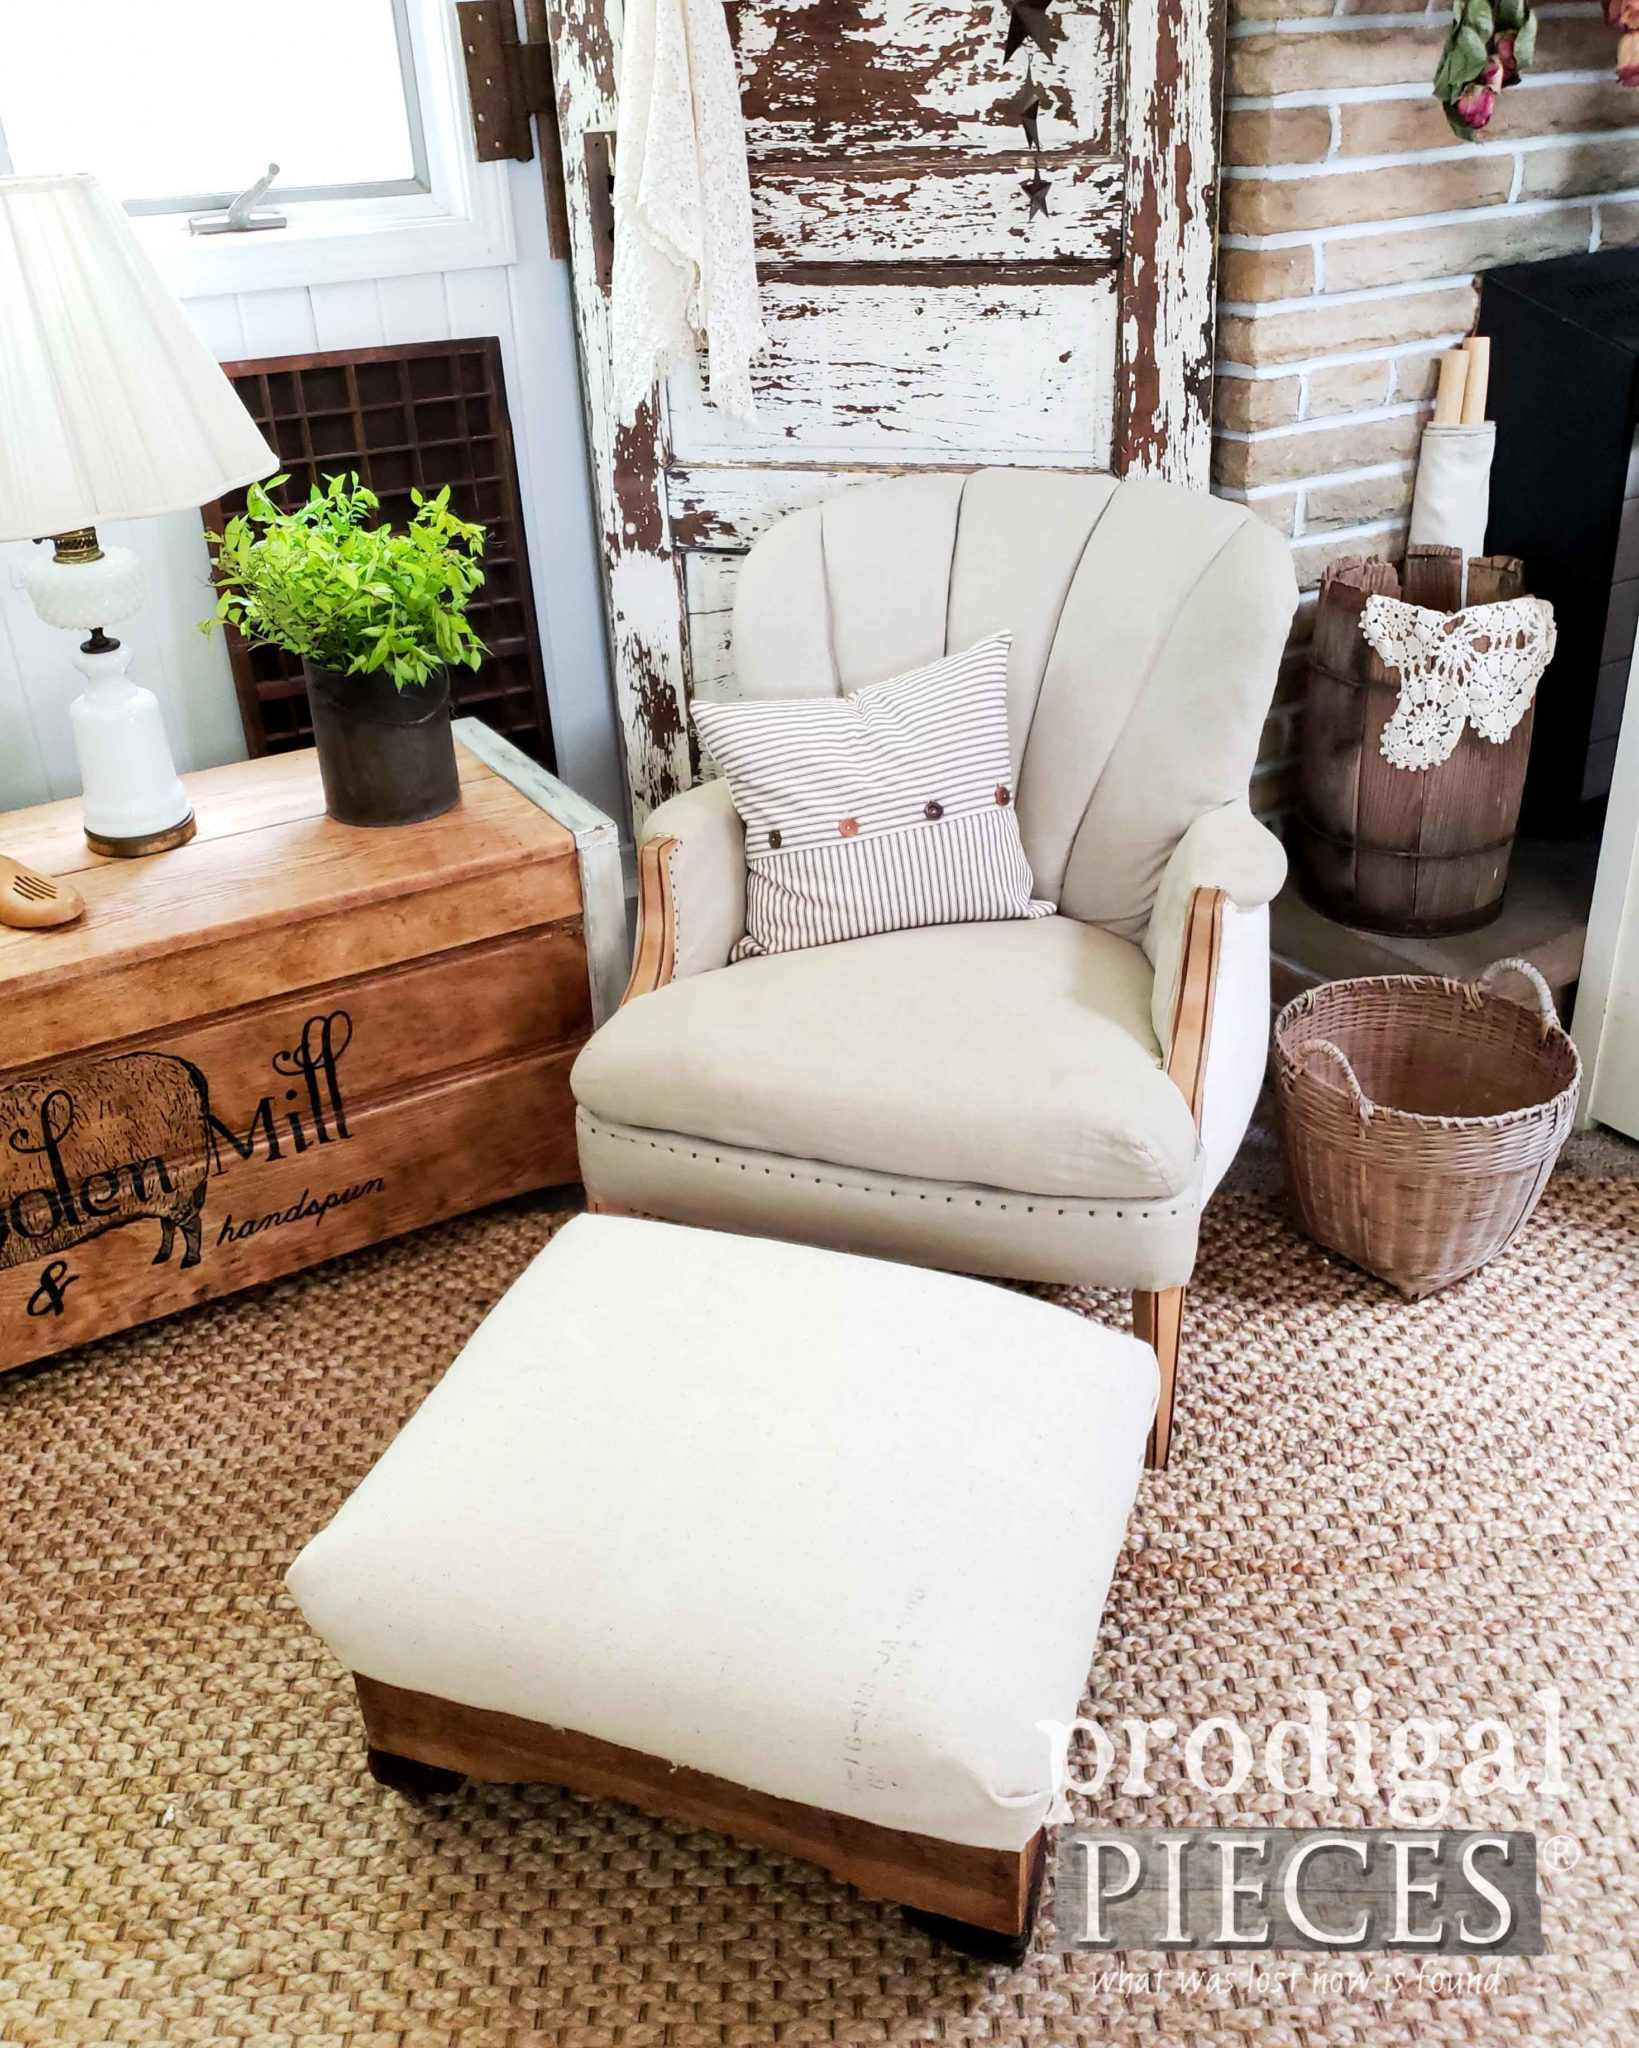 Feed Sack Farmhouse Style Deconstructed Ottoman and Chair by Larissa of Prodigal Pieces | prodigalpieces.com